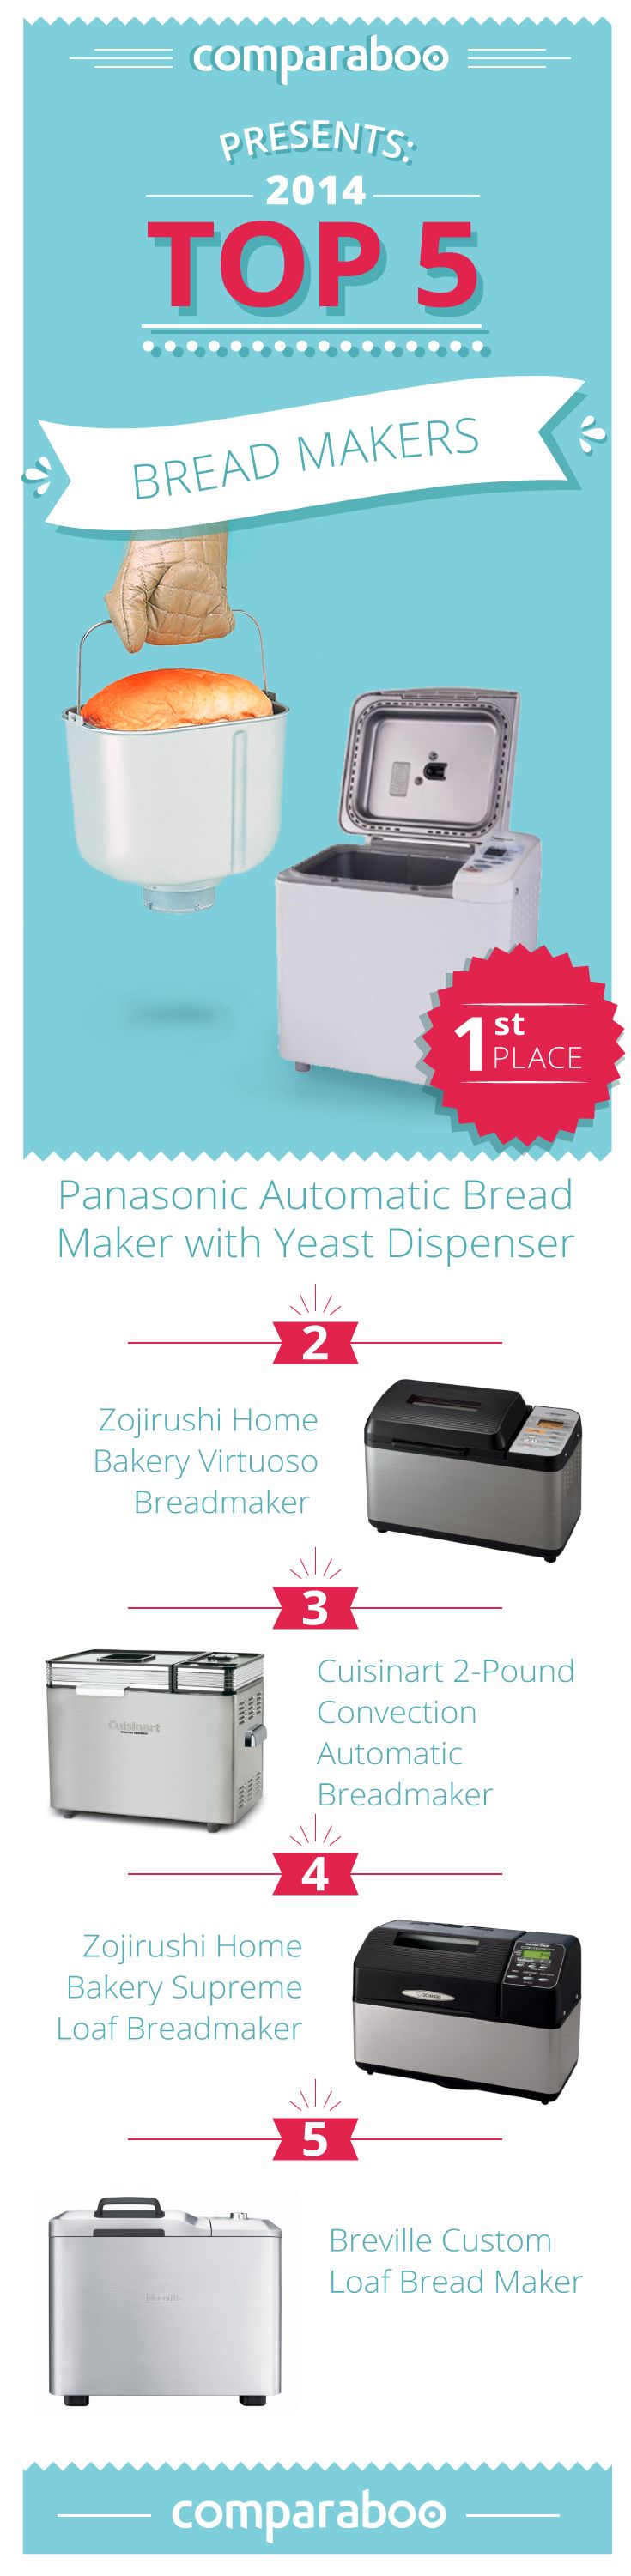 There's nothing like fresh bread with the convenience of a bread maker. To help you find the best bread machine, we've compiled a list of the top bread makers on  Comparaboo #freshbread http://www.comparaboo.com//bread-makers